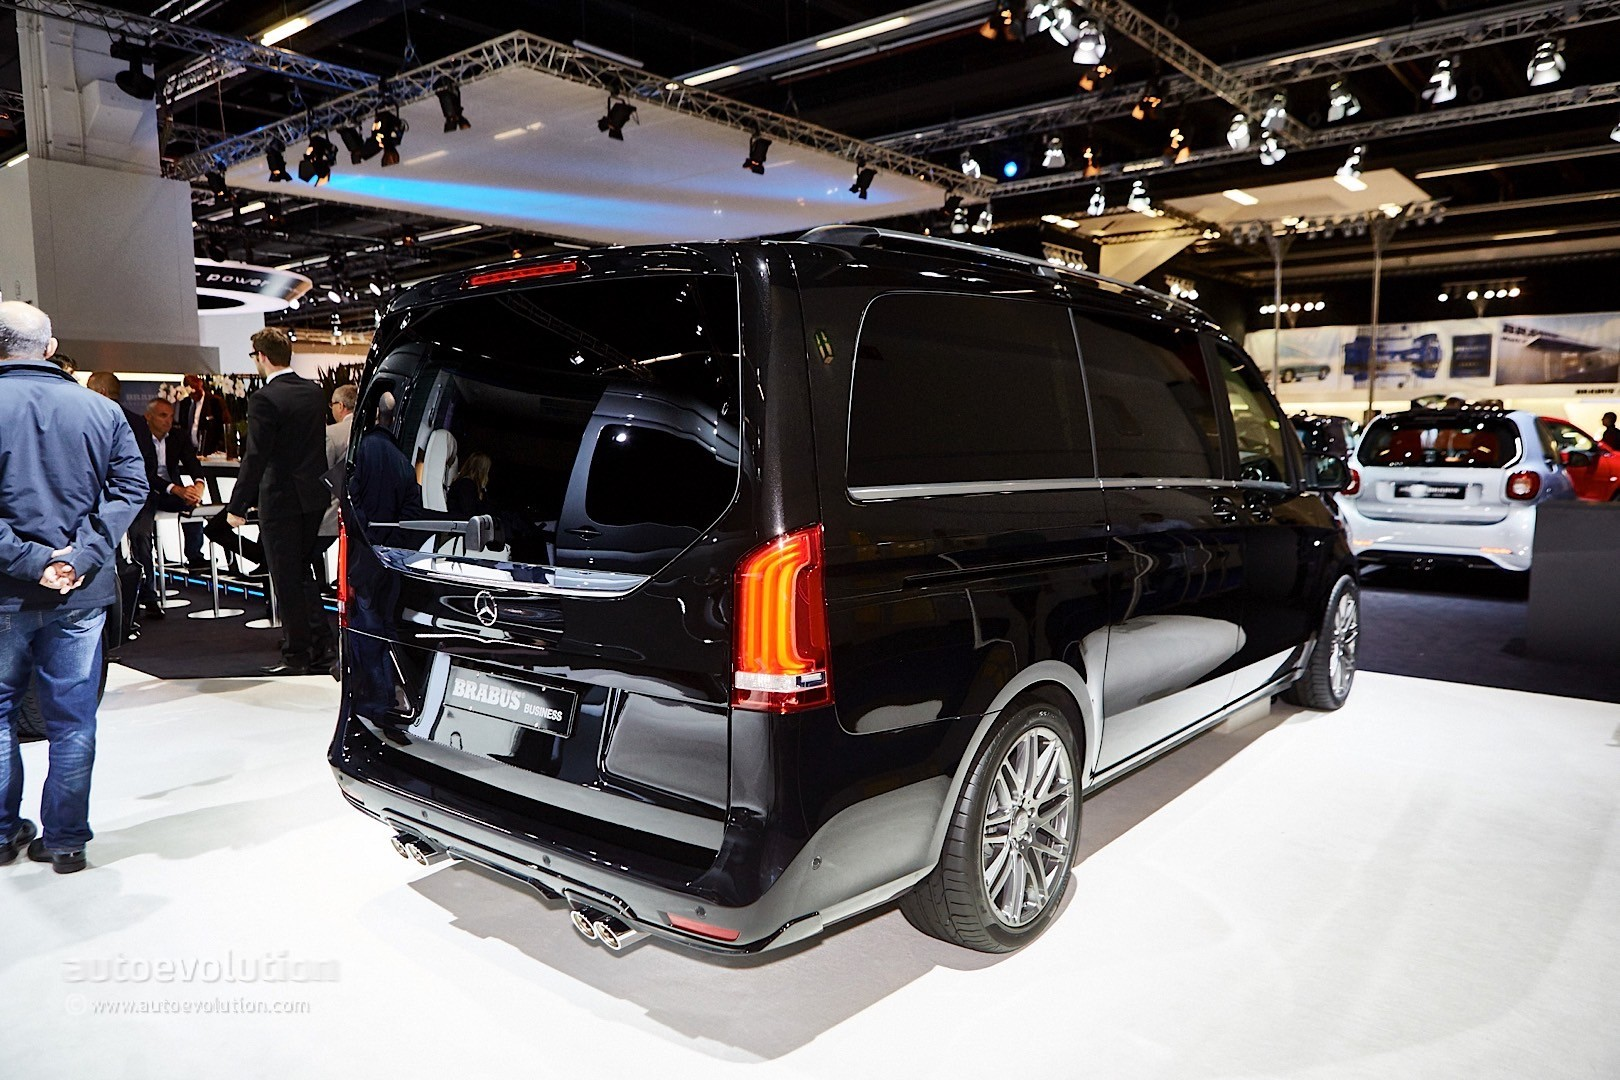 ' ' from the web at 'http://s1.cdn.autoevolution.com/images/news/gallery/brabus-sprinter-and-v-class-fill-the-luxury-van-gap-in-frankfurt-live-photos_25.jpg'